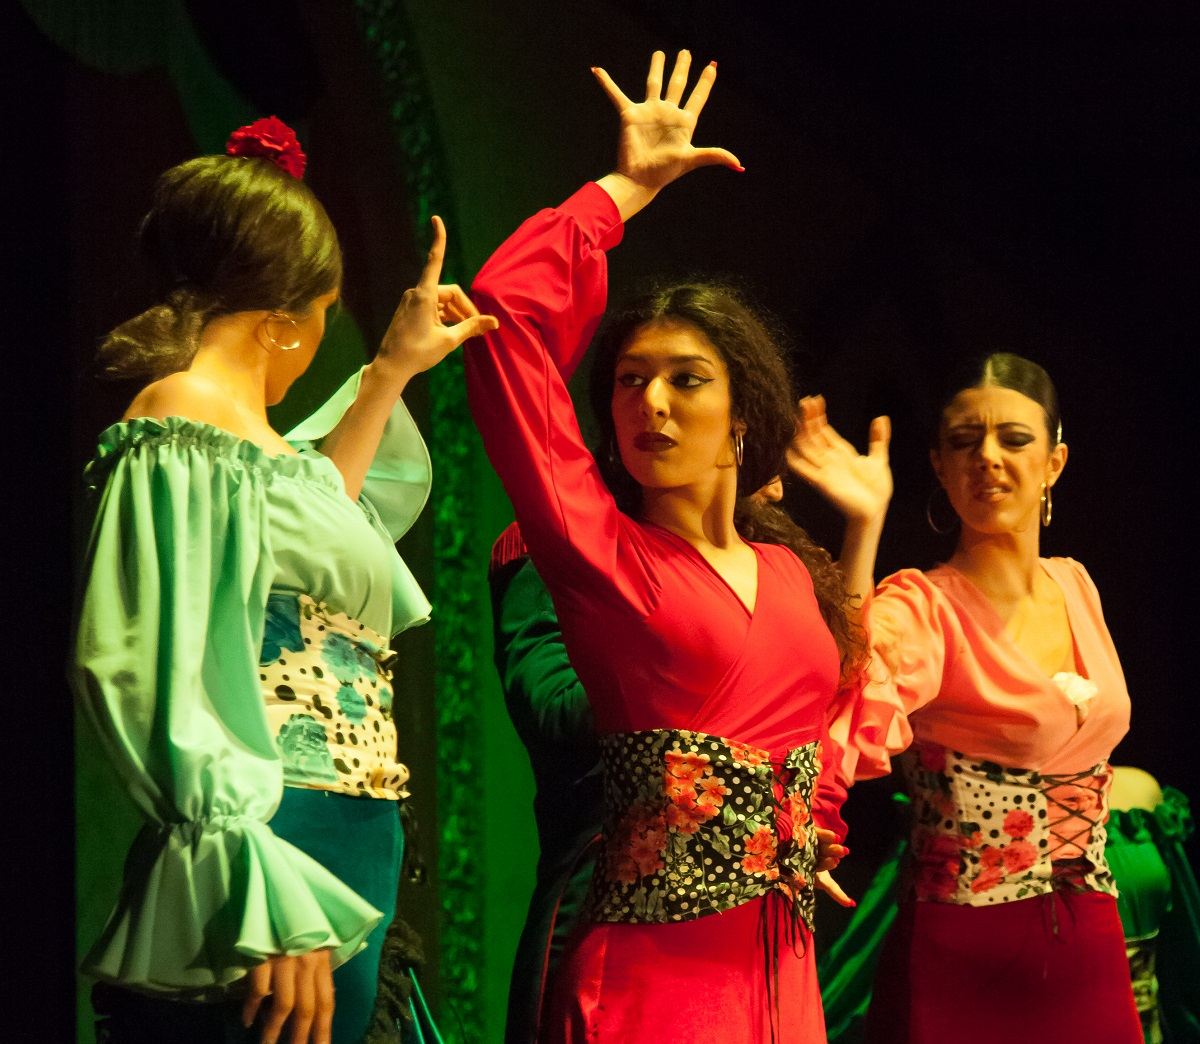 Ana Oropesa is a flamenco dancer in Seville